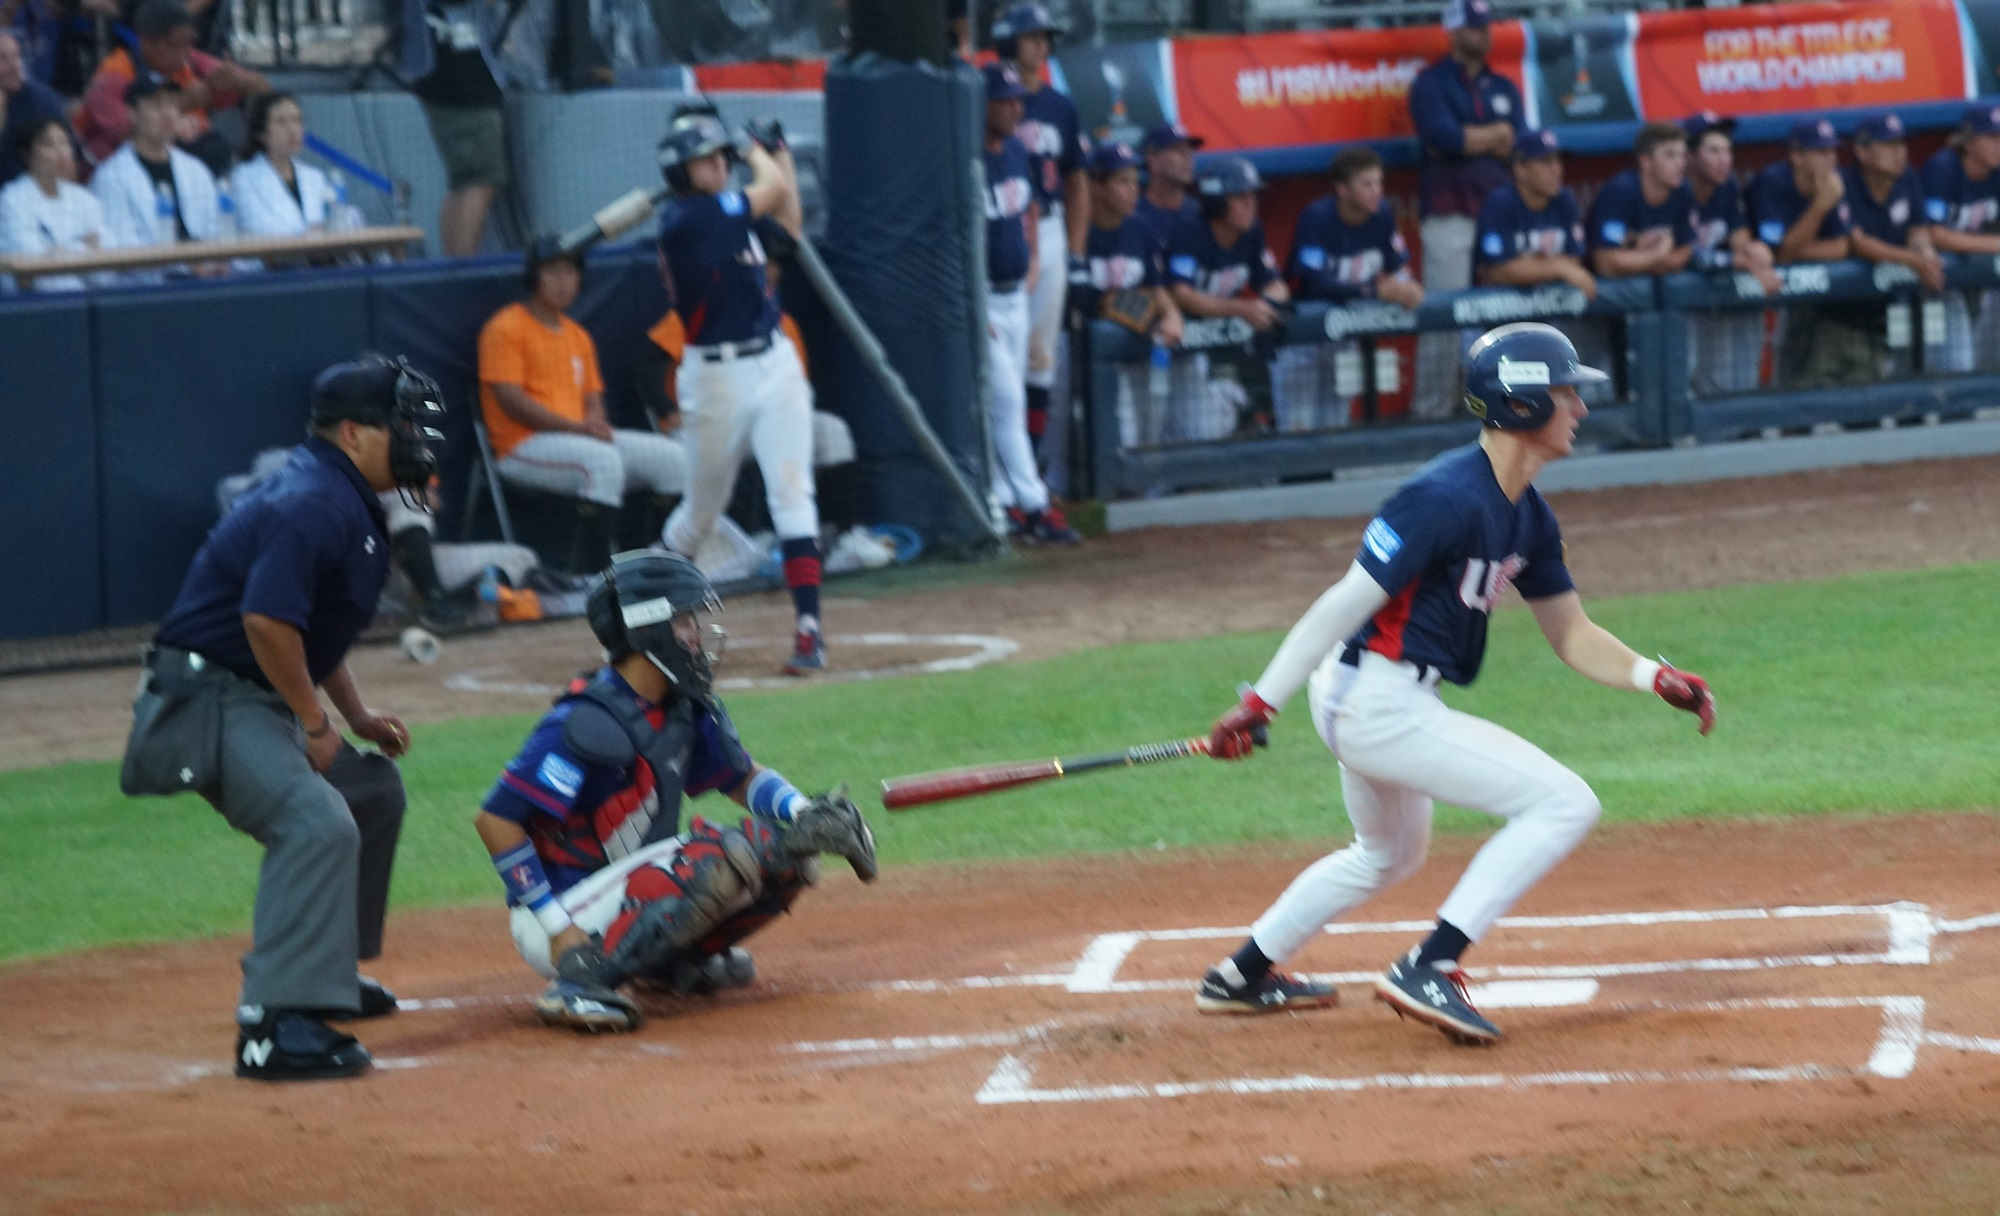 Robert Hassell had two hits and scored the only run for the USA